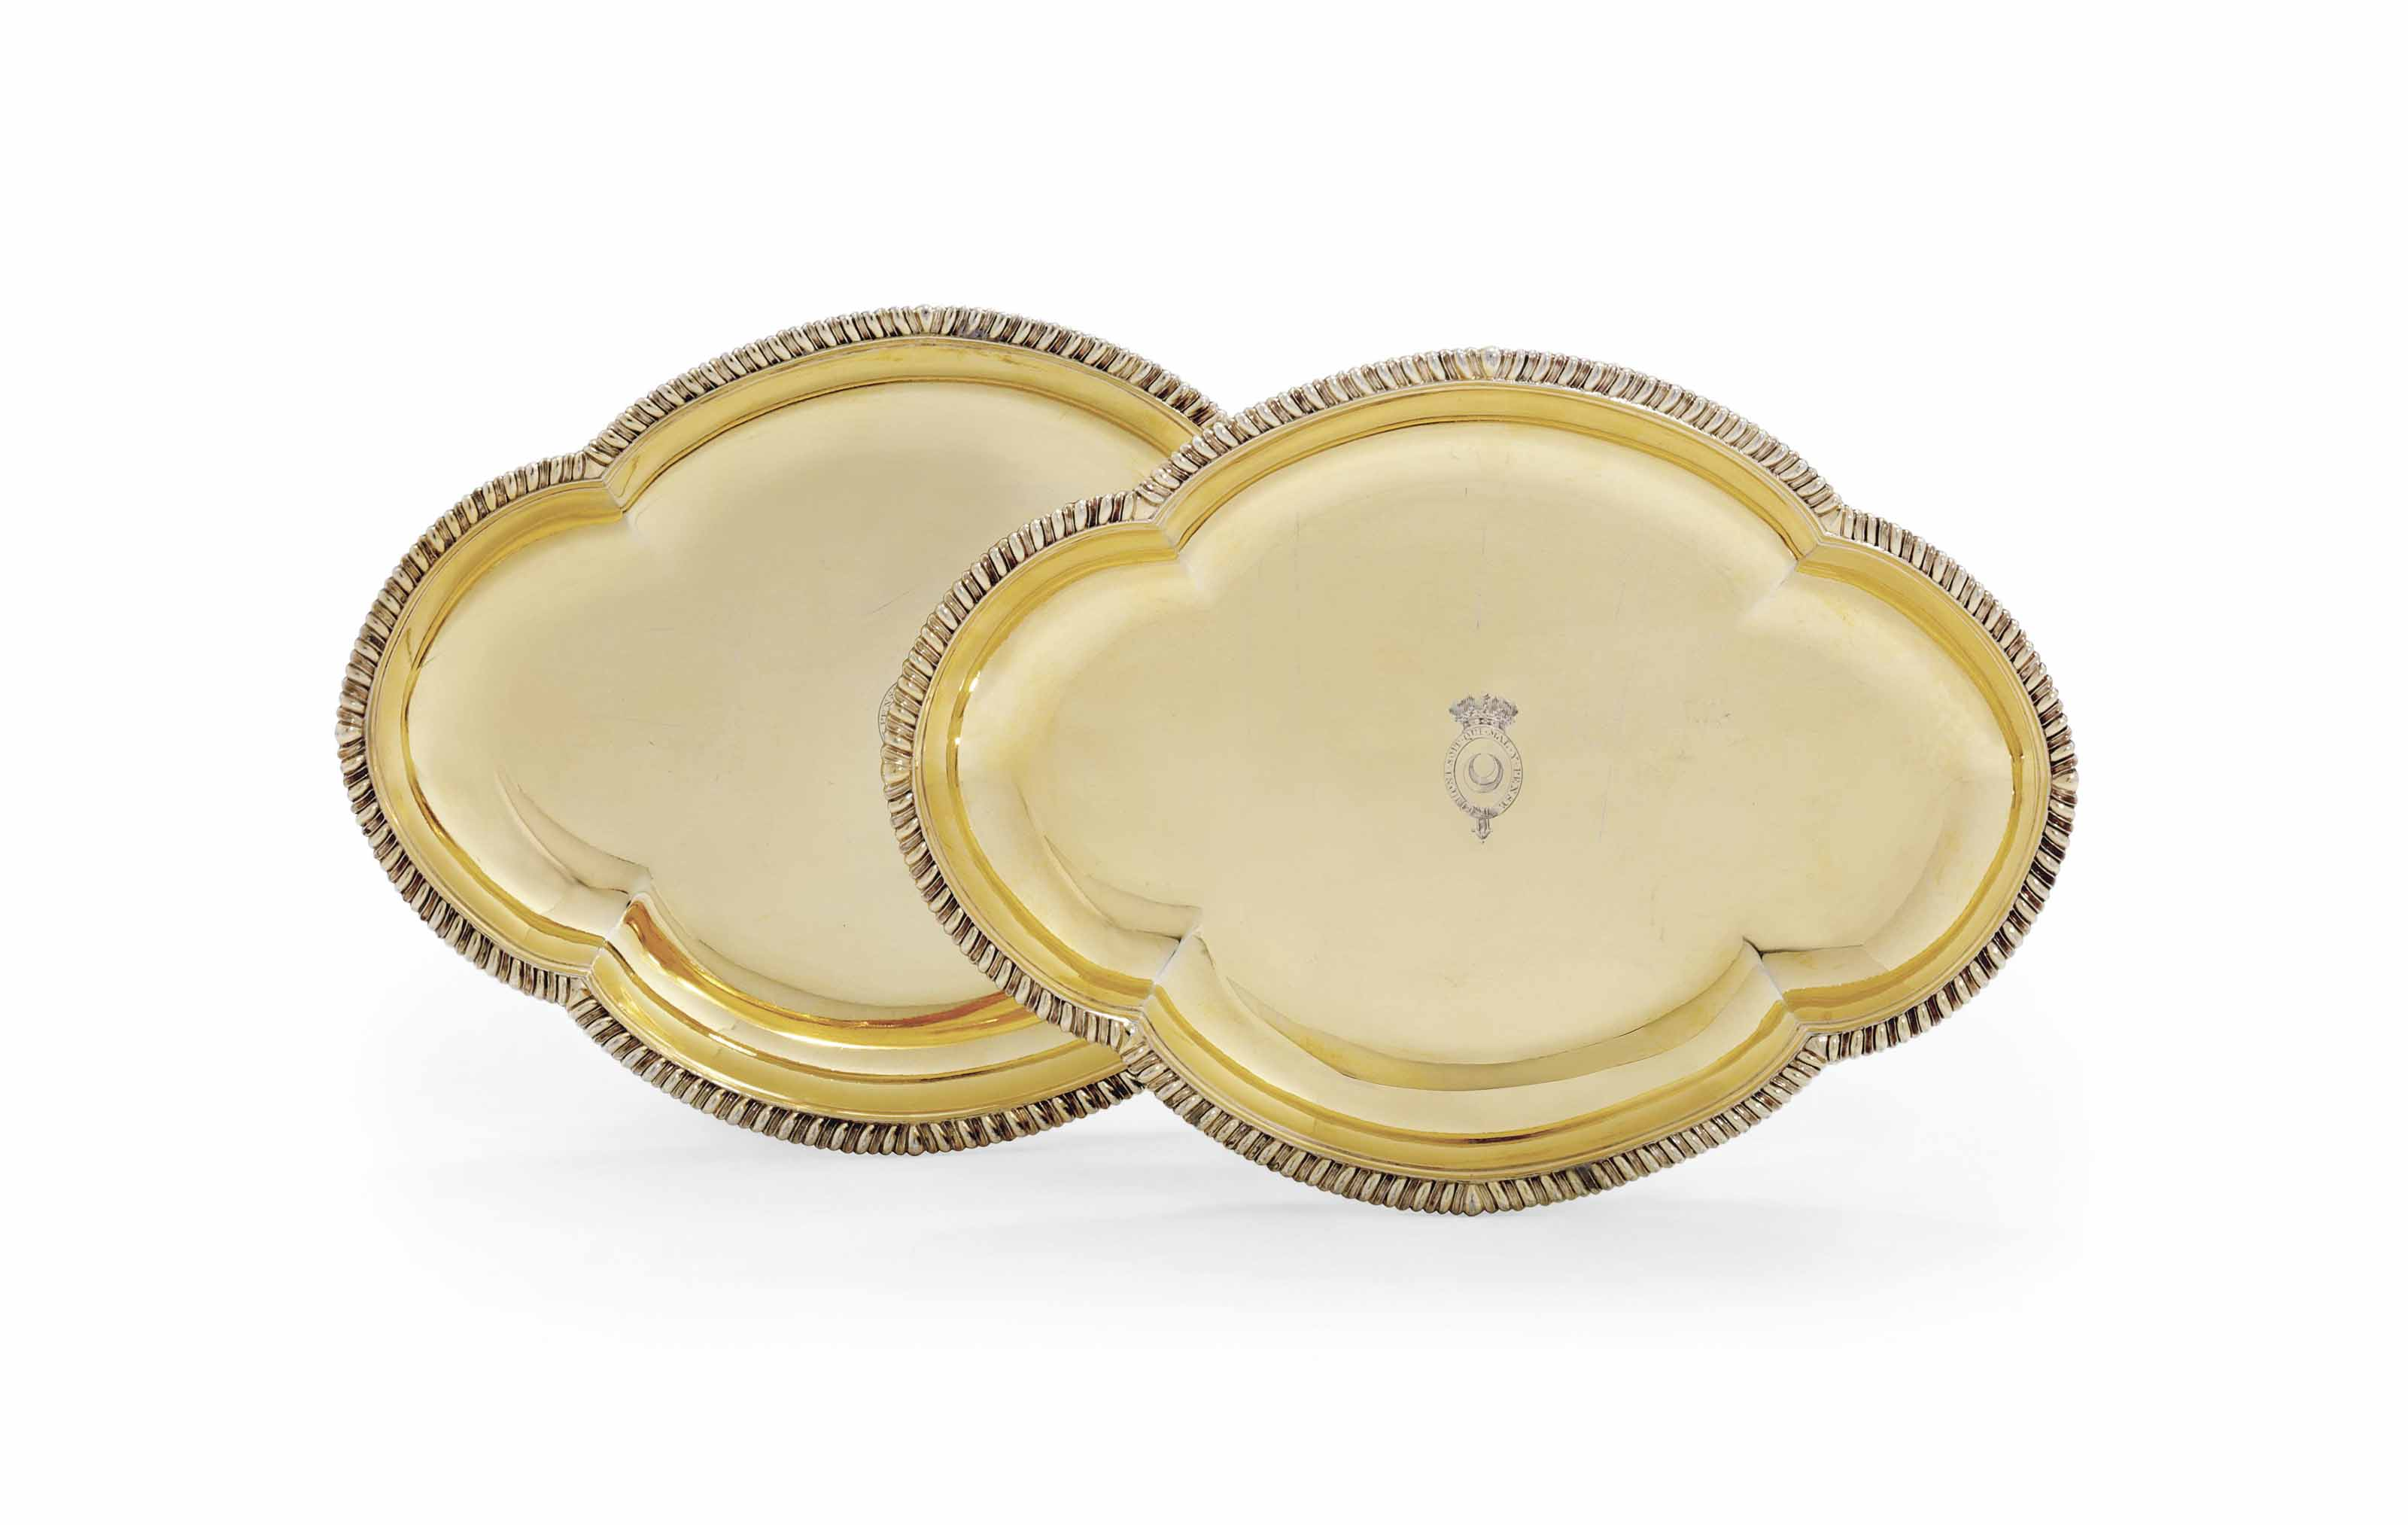 A PAIR OF GEORGE III SILVER-GILT DESSERT-DISHES FROM THE NORTHUMBERLAND DESSERT SERVICE